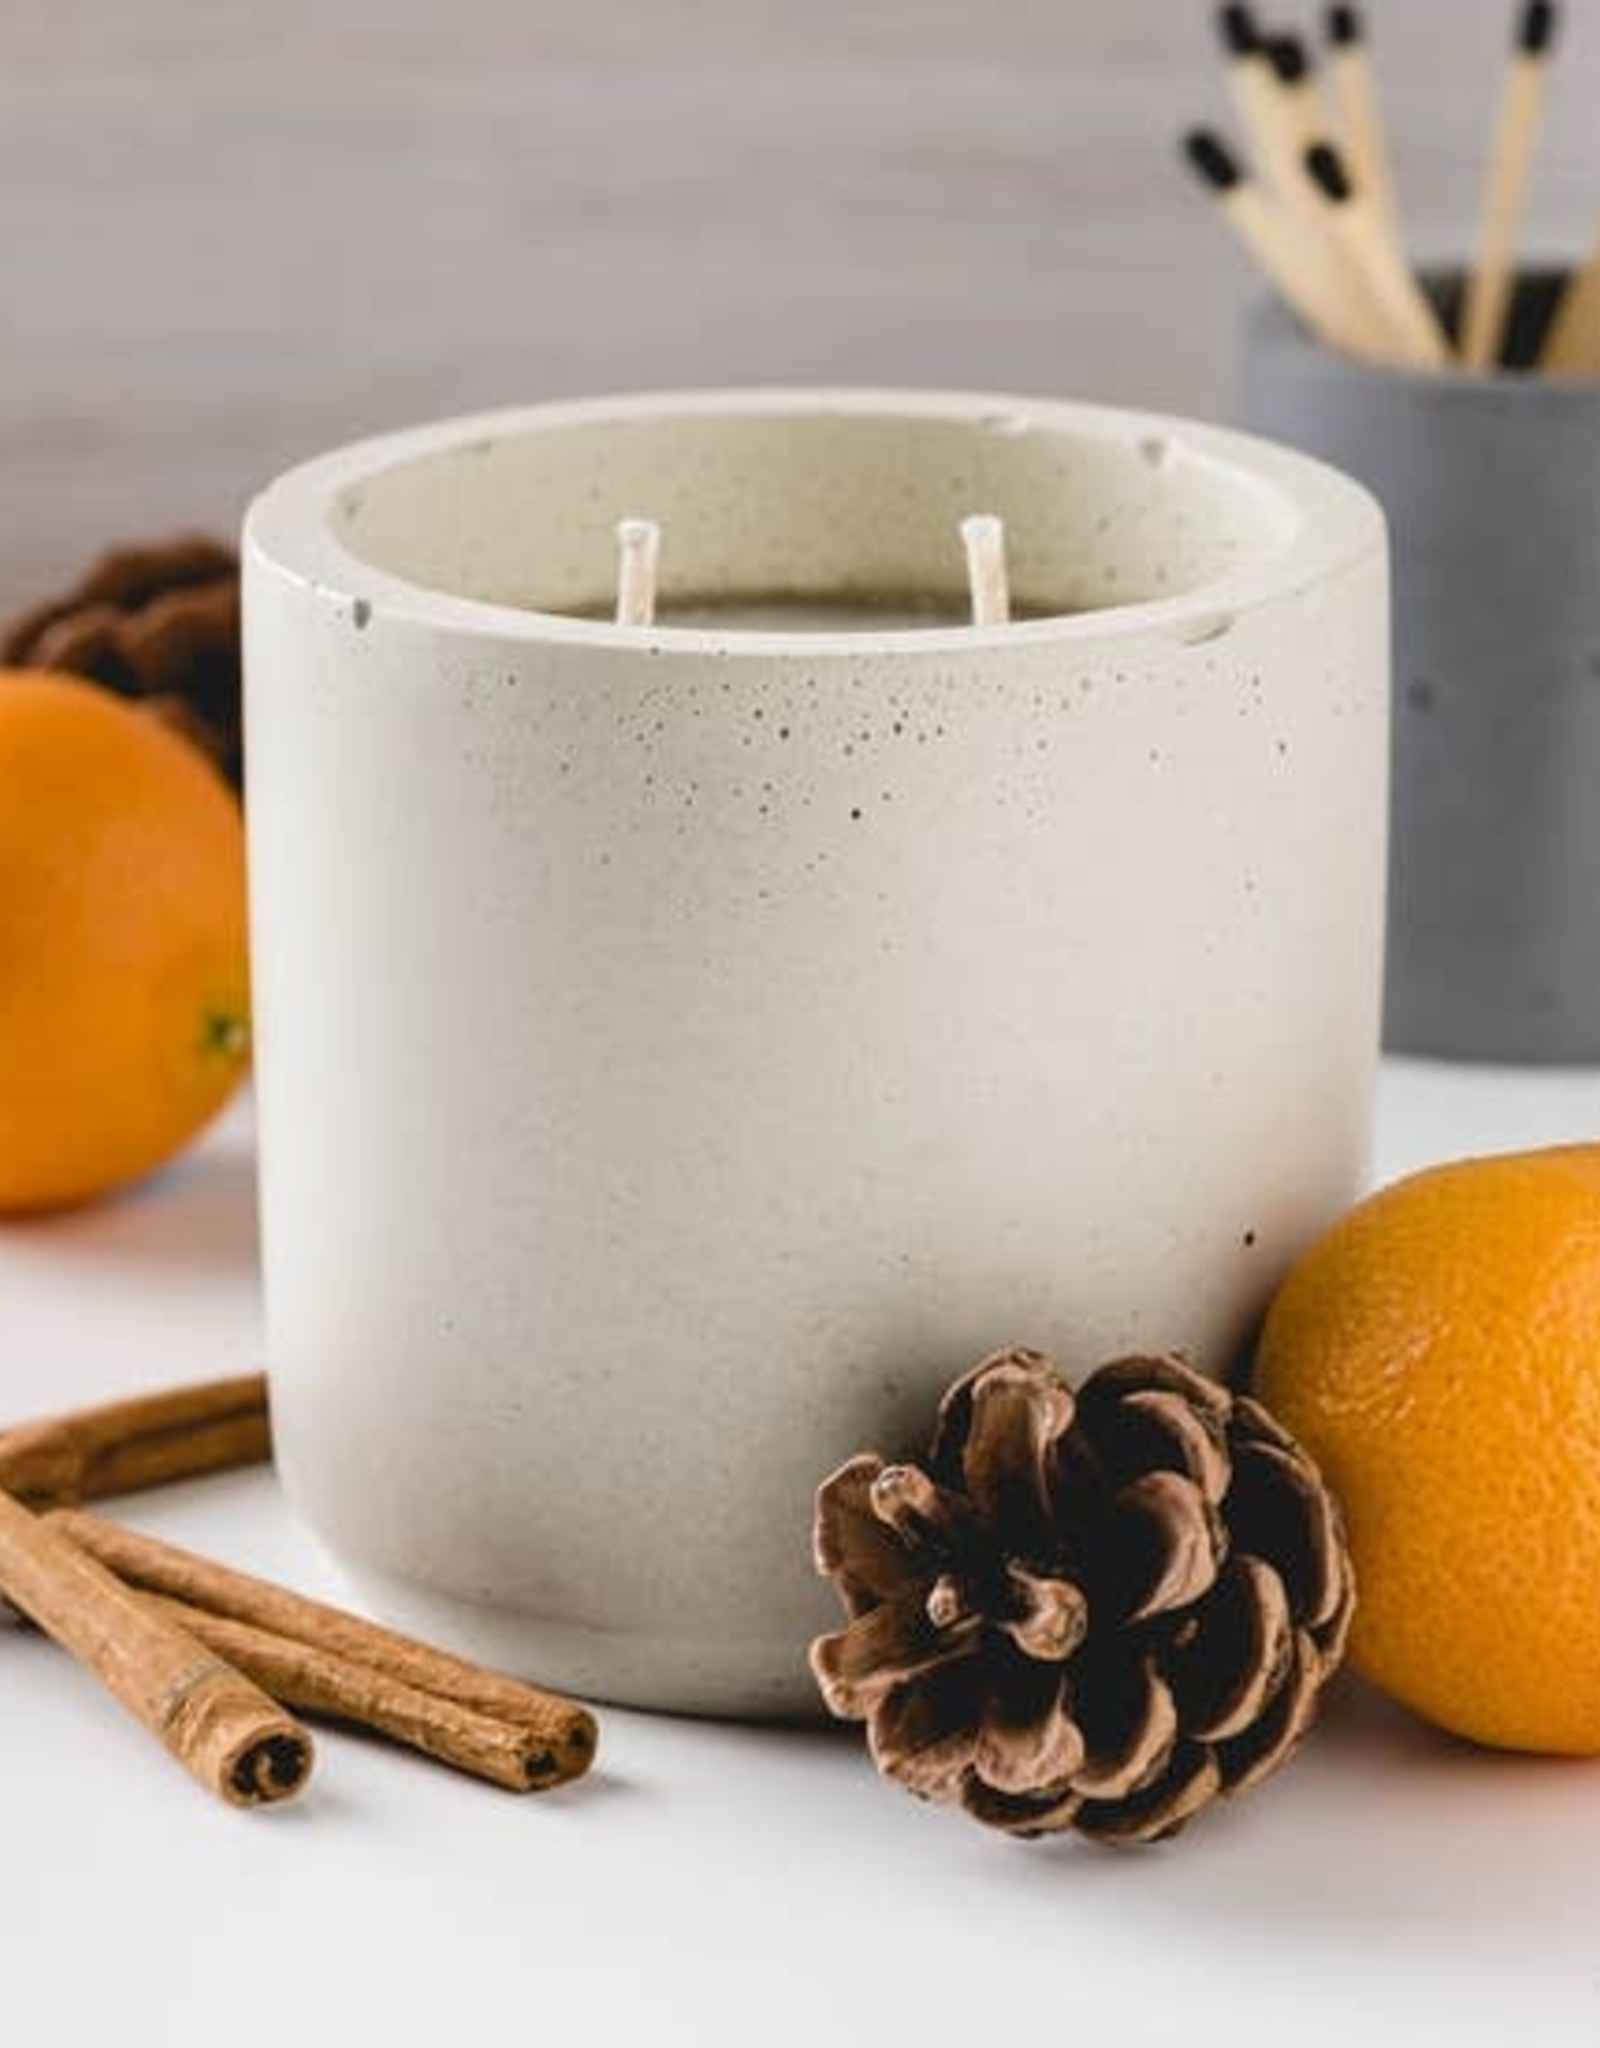 LeBLANC finds Sweater Weather Candle, Natural Colour